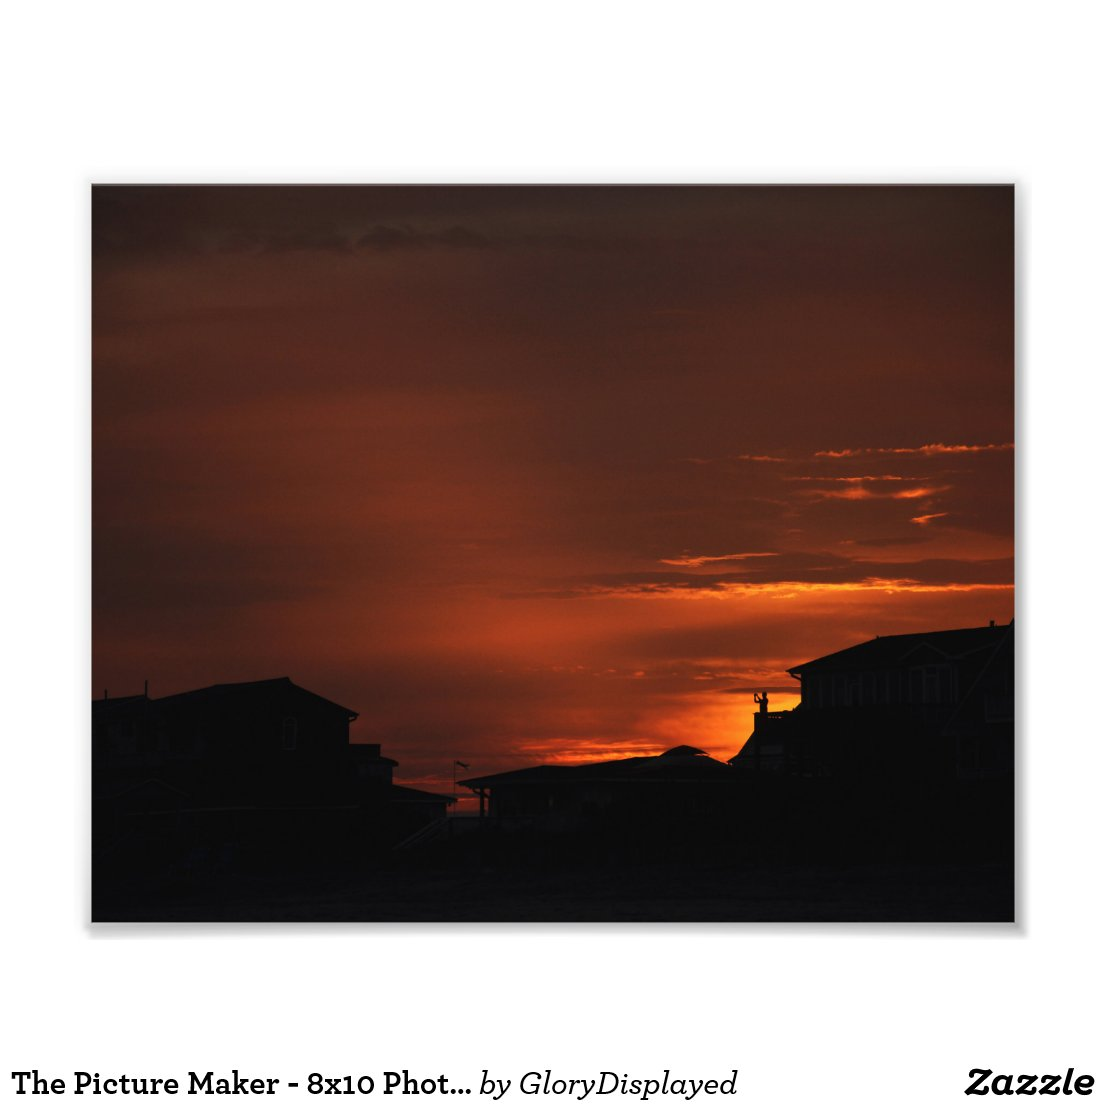 The Picture Maker - 8x10 Photo Print